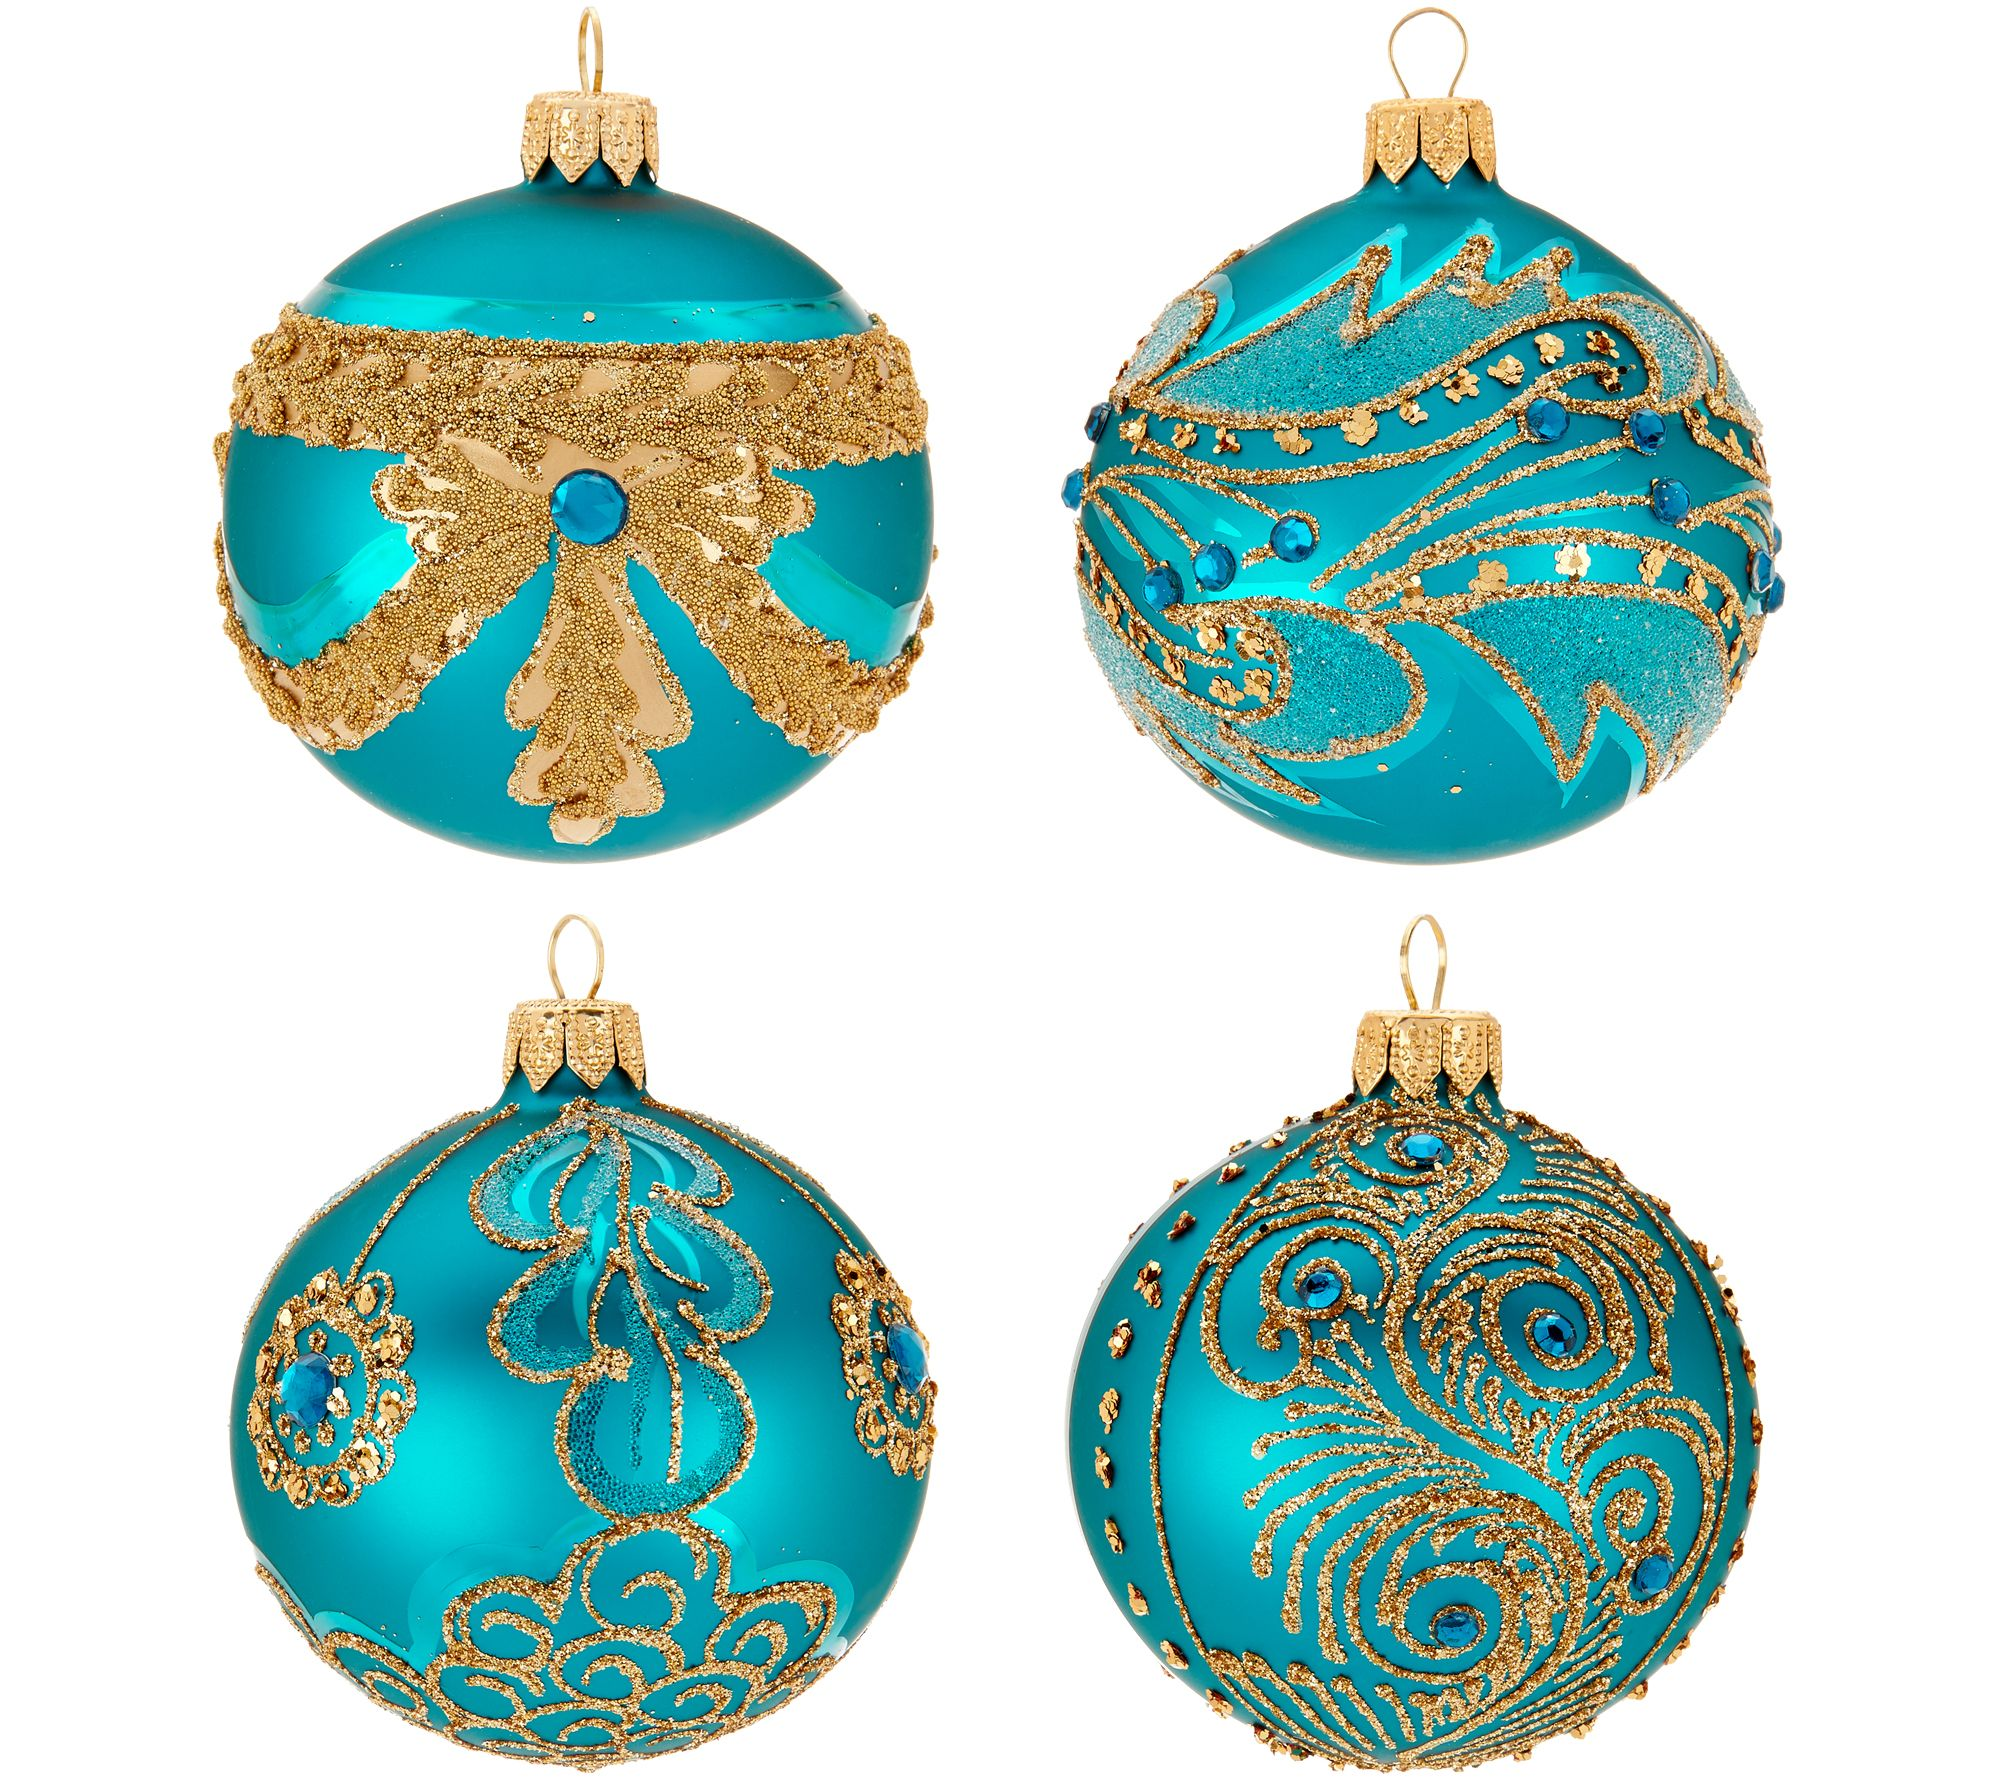 Hallmark Heritage S/4 Blown Glass Ornaments with Glitter Accents ...